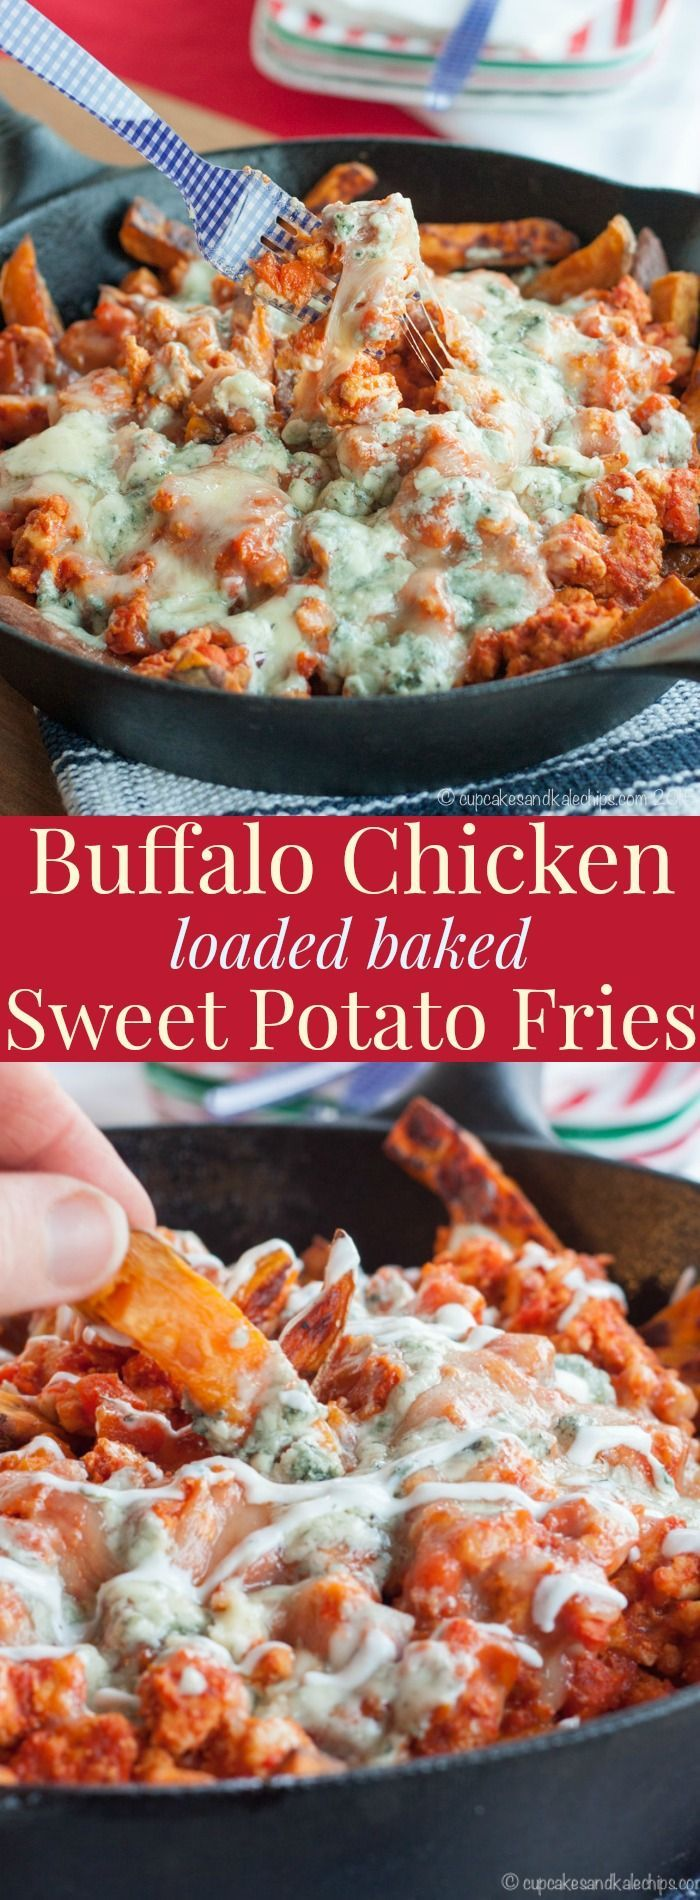 Buffalo Chicken Loaded Baked Sweet Potato Fries - a tasty twist on poutine with plenty of spicy hot wing flavor and lots of cheese